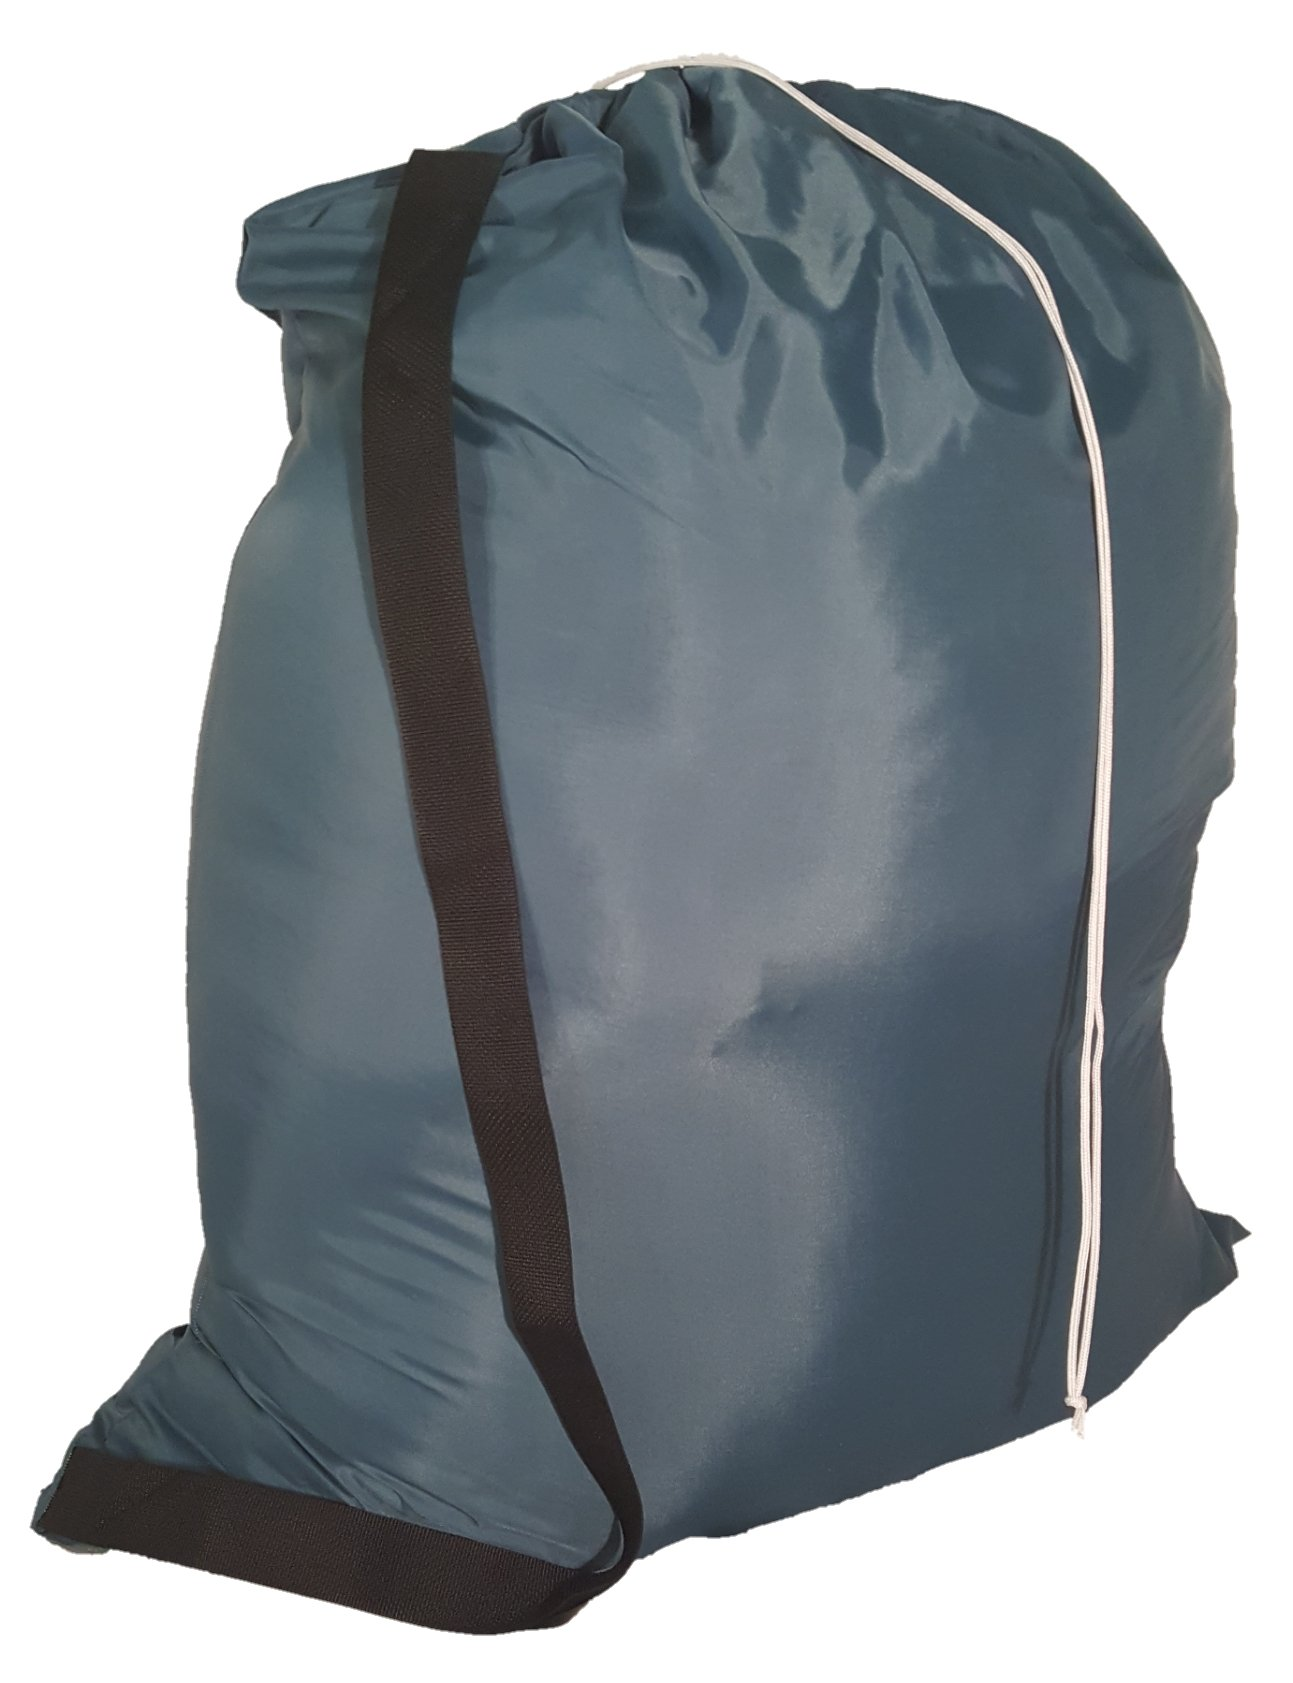 Amerabag Heavy Duty 40inx50in Nylon Laundry Bag with Strap